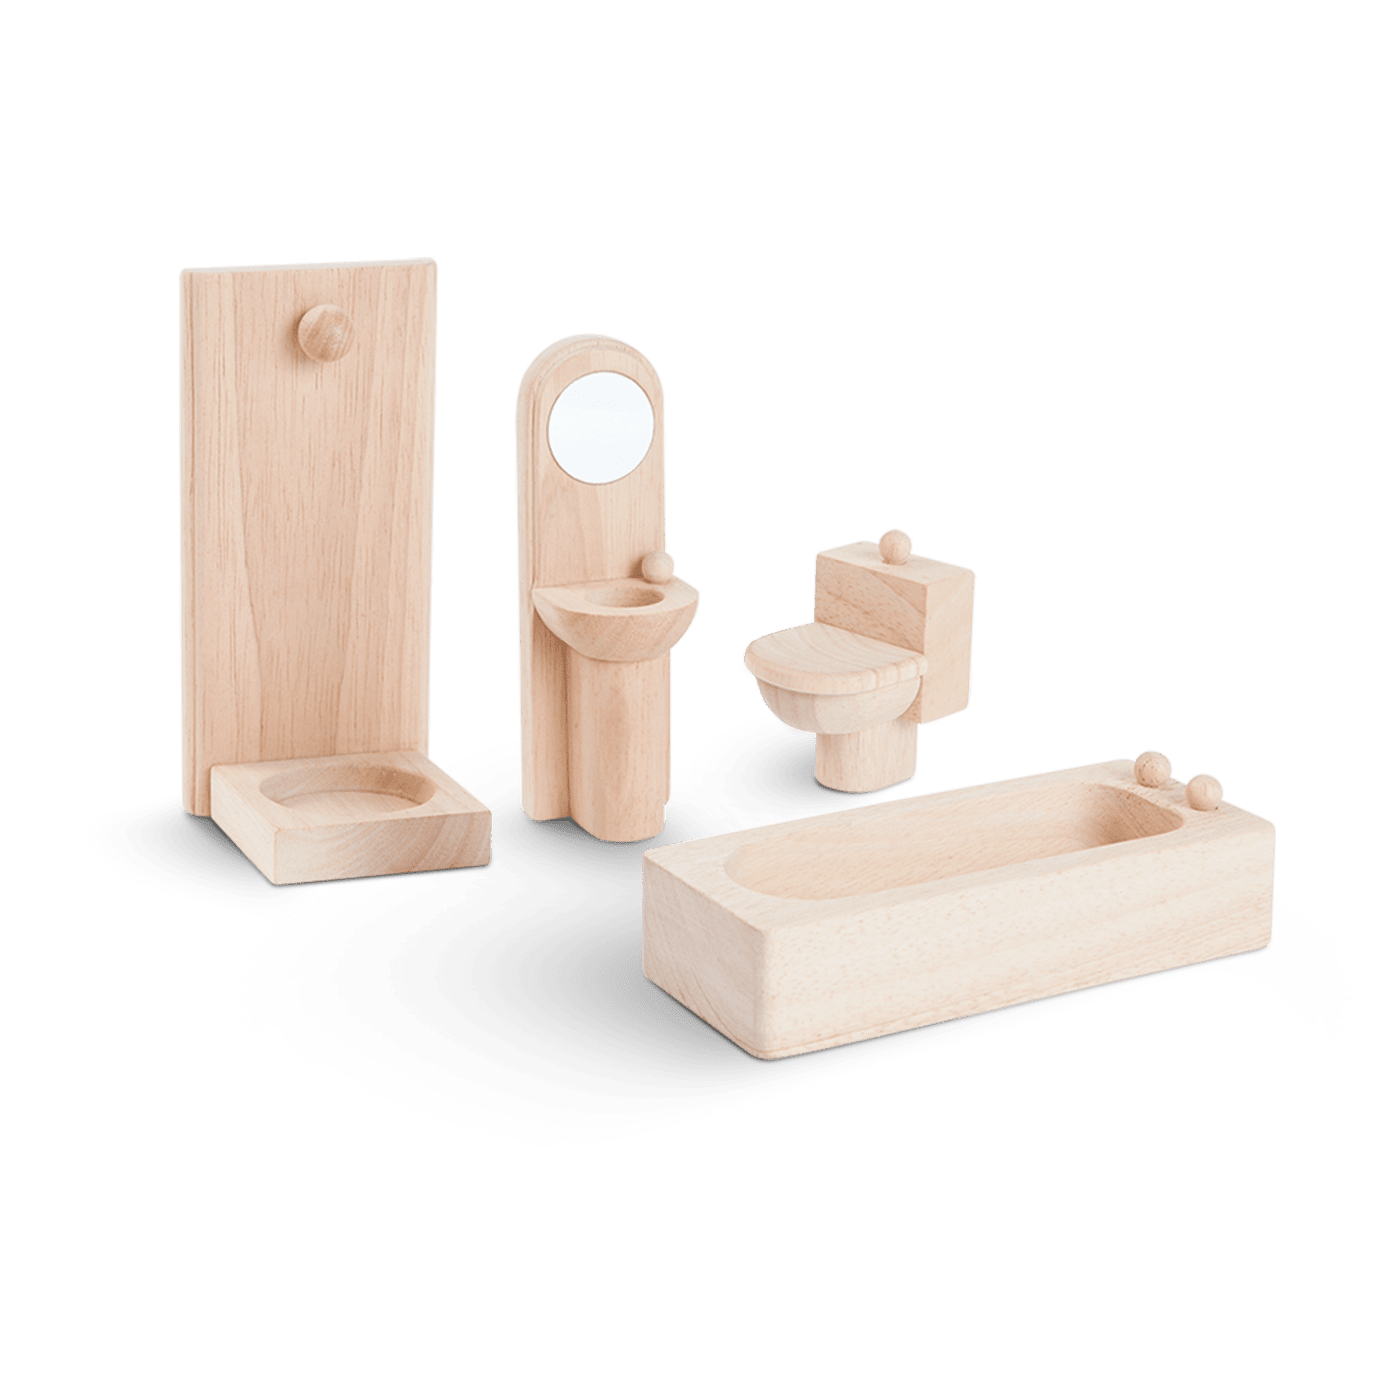 9014_PlanToys_BATHROOM-CLASSIC_Pretend_Play_Social_Imagination_Fine_Motor_Coordination_Language_and_Communications_3yrs_Wooden_toys_Education_toys_Safety_Toys_Non-toxic_0.png